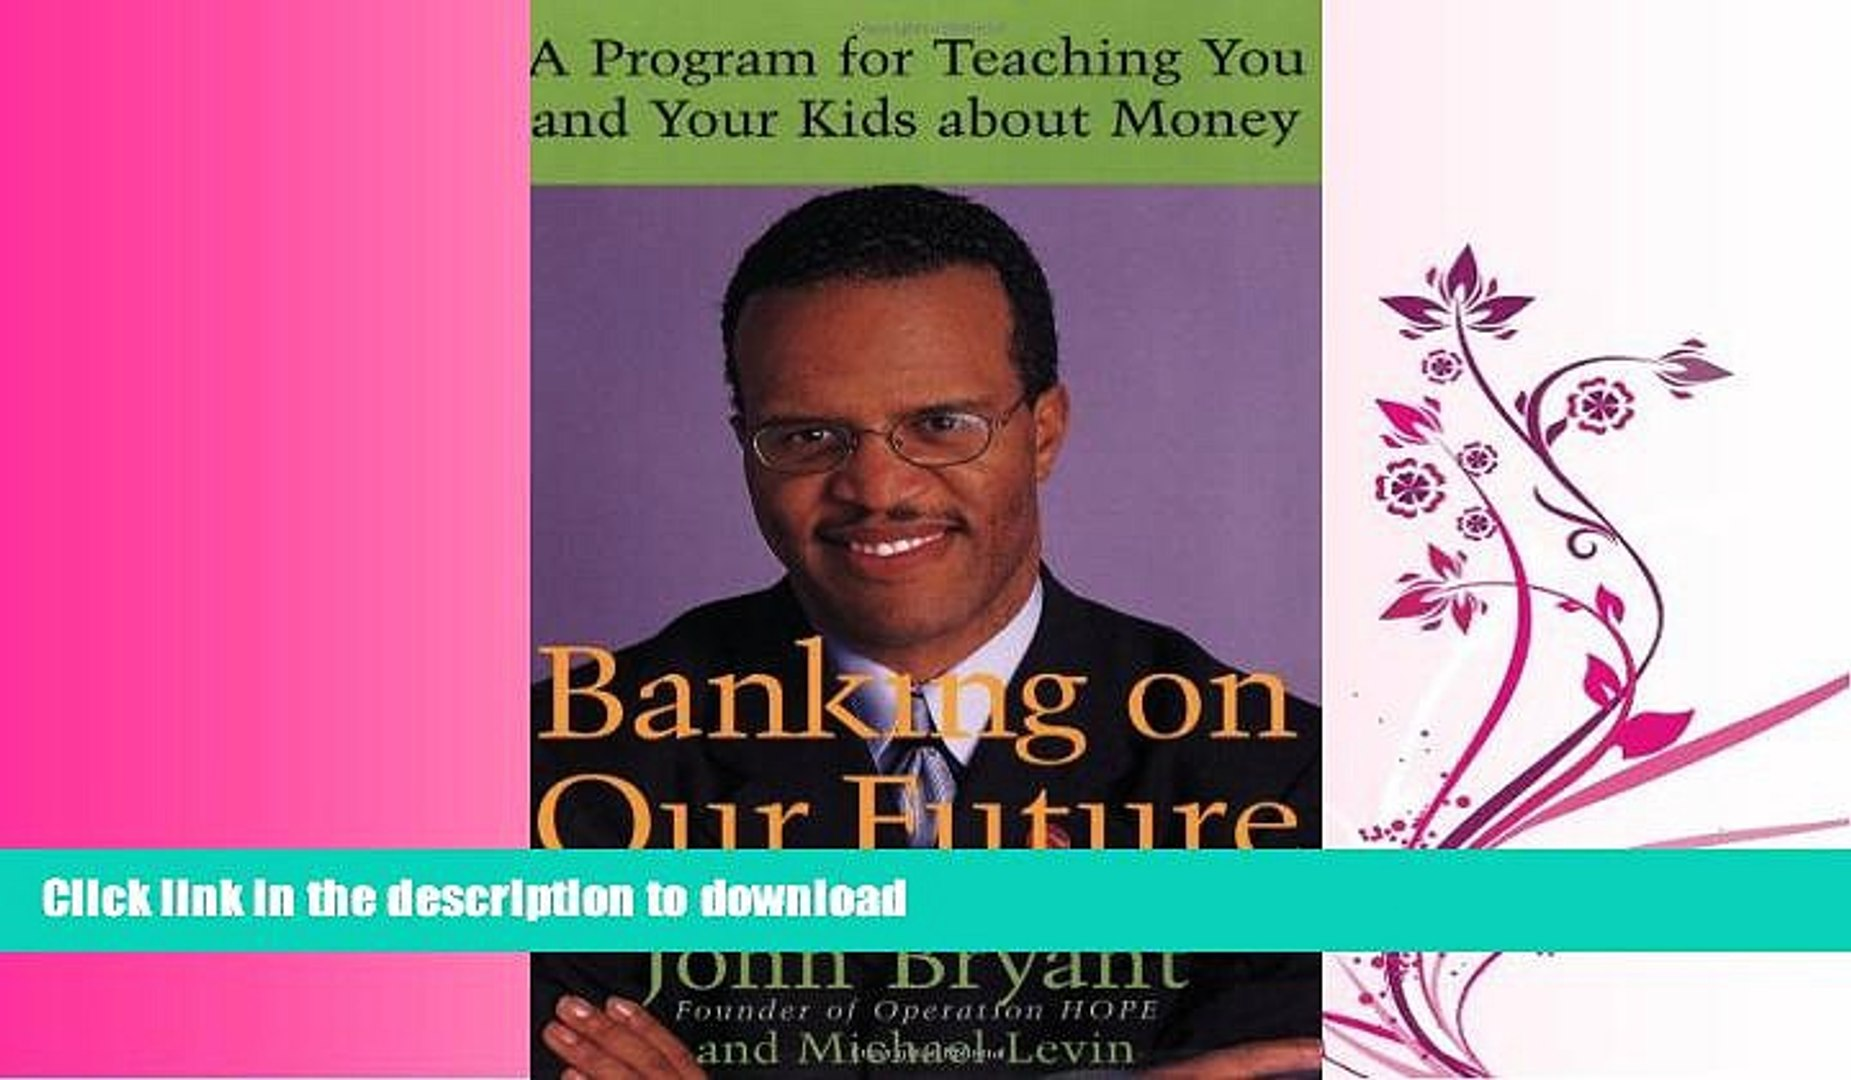 READ ONLINE Banking on Our Future: A Program for Teaching You and Your Kids about Money READ NOW